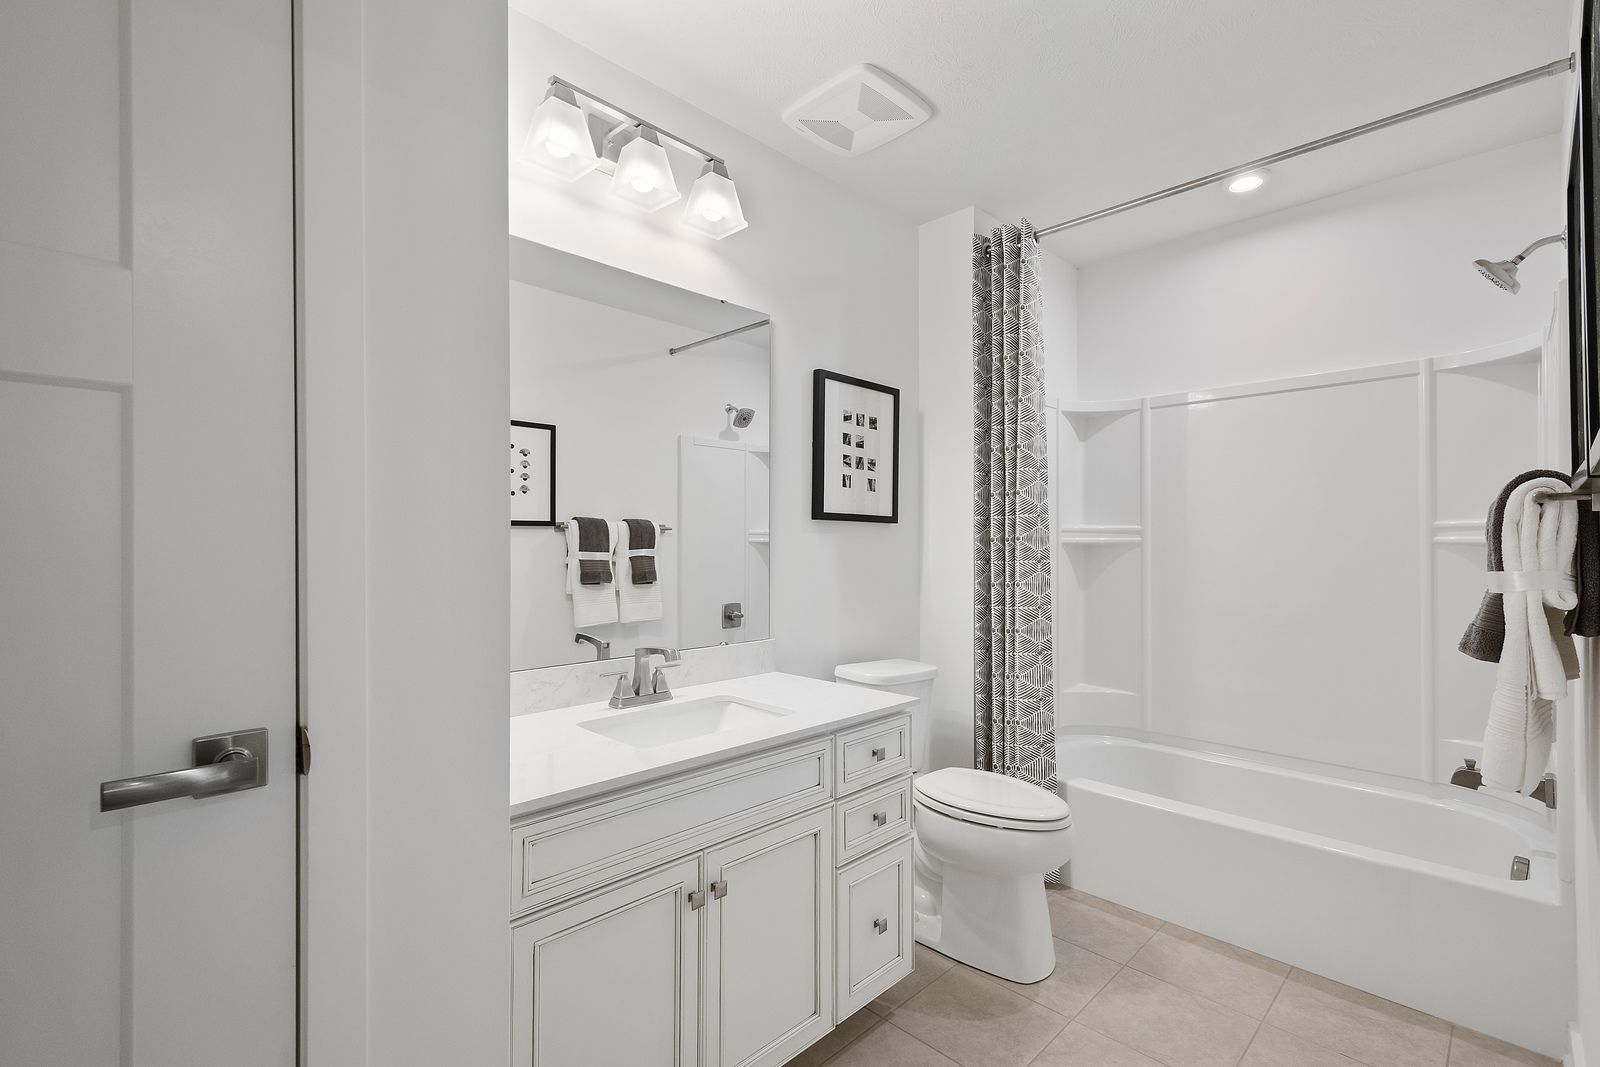 Bathroom featured in the Calvert By Ryan Homes in Nashville, TN